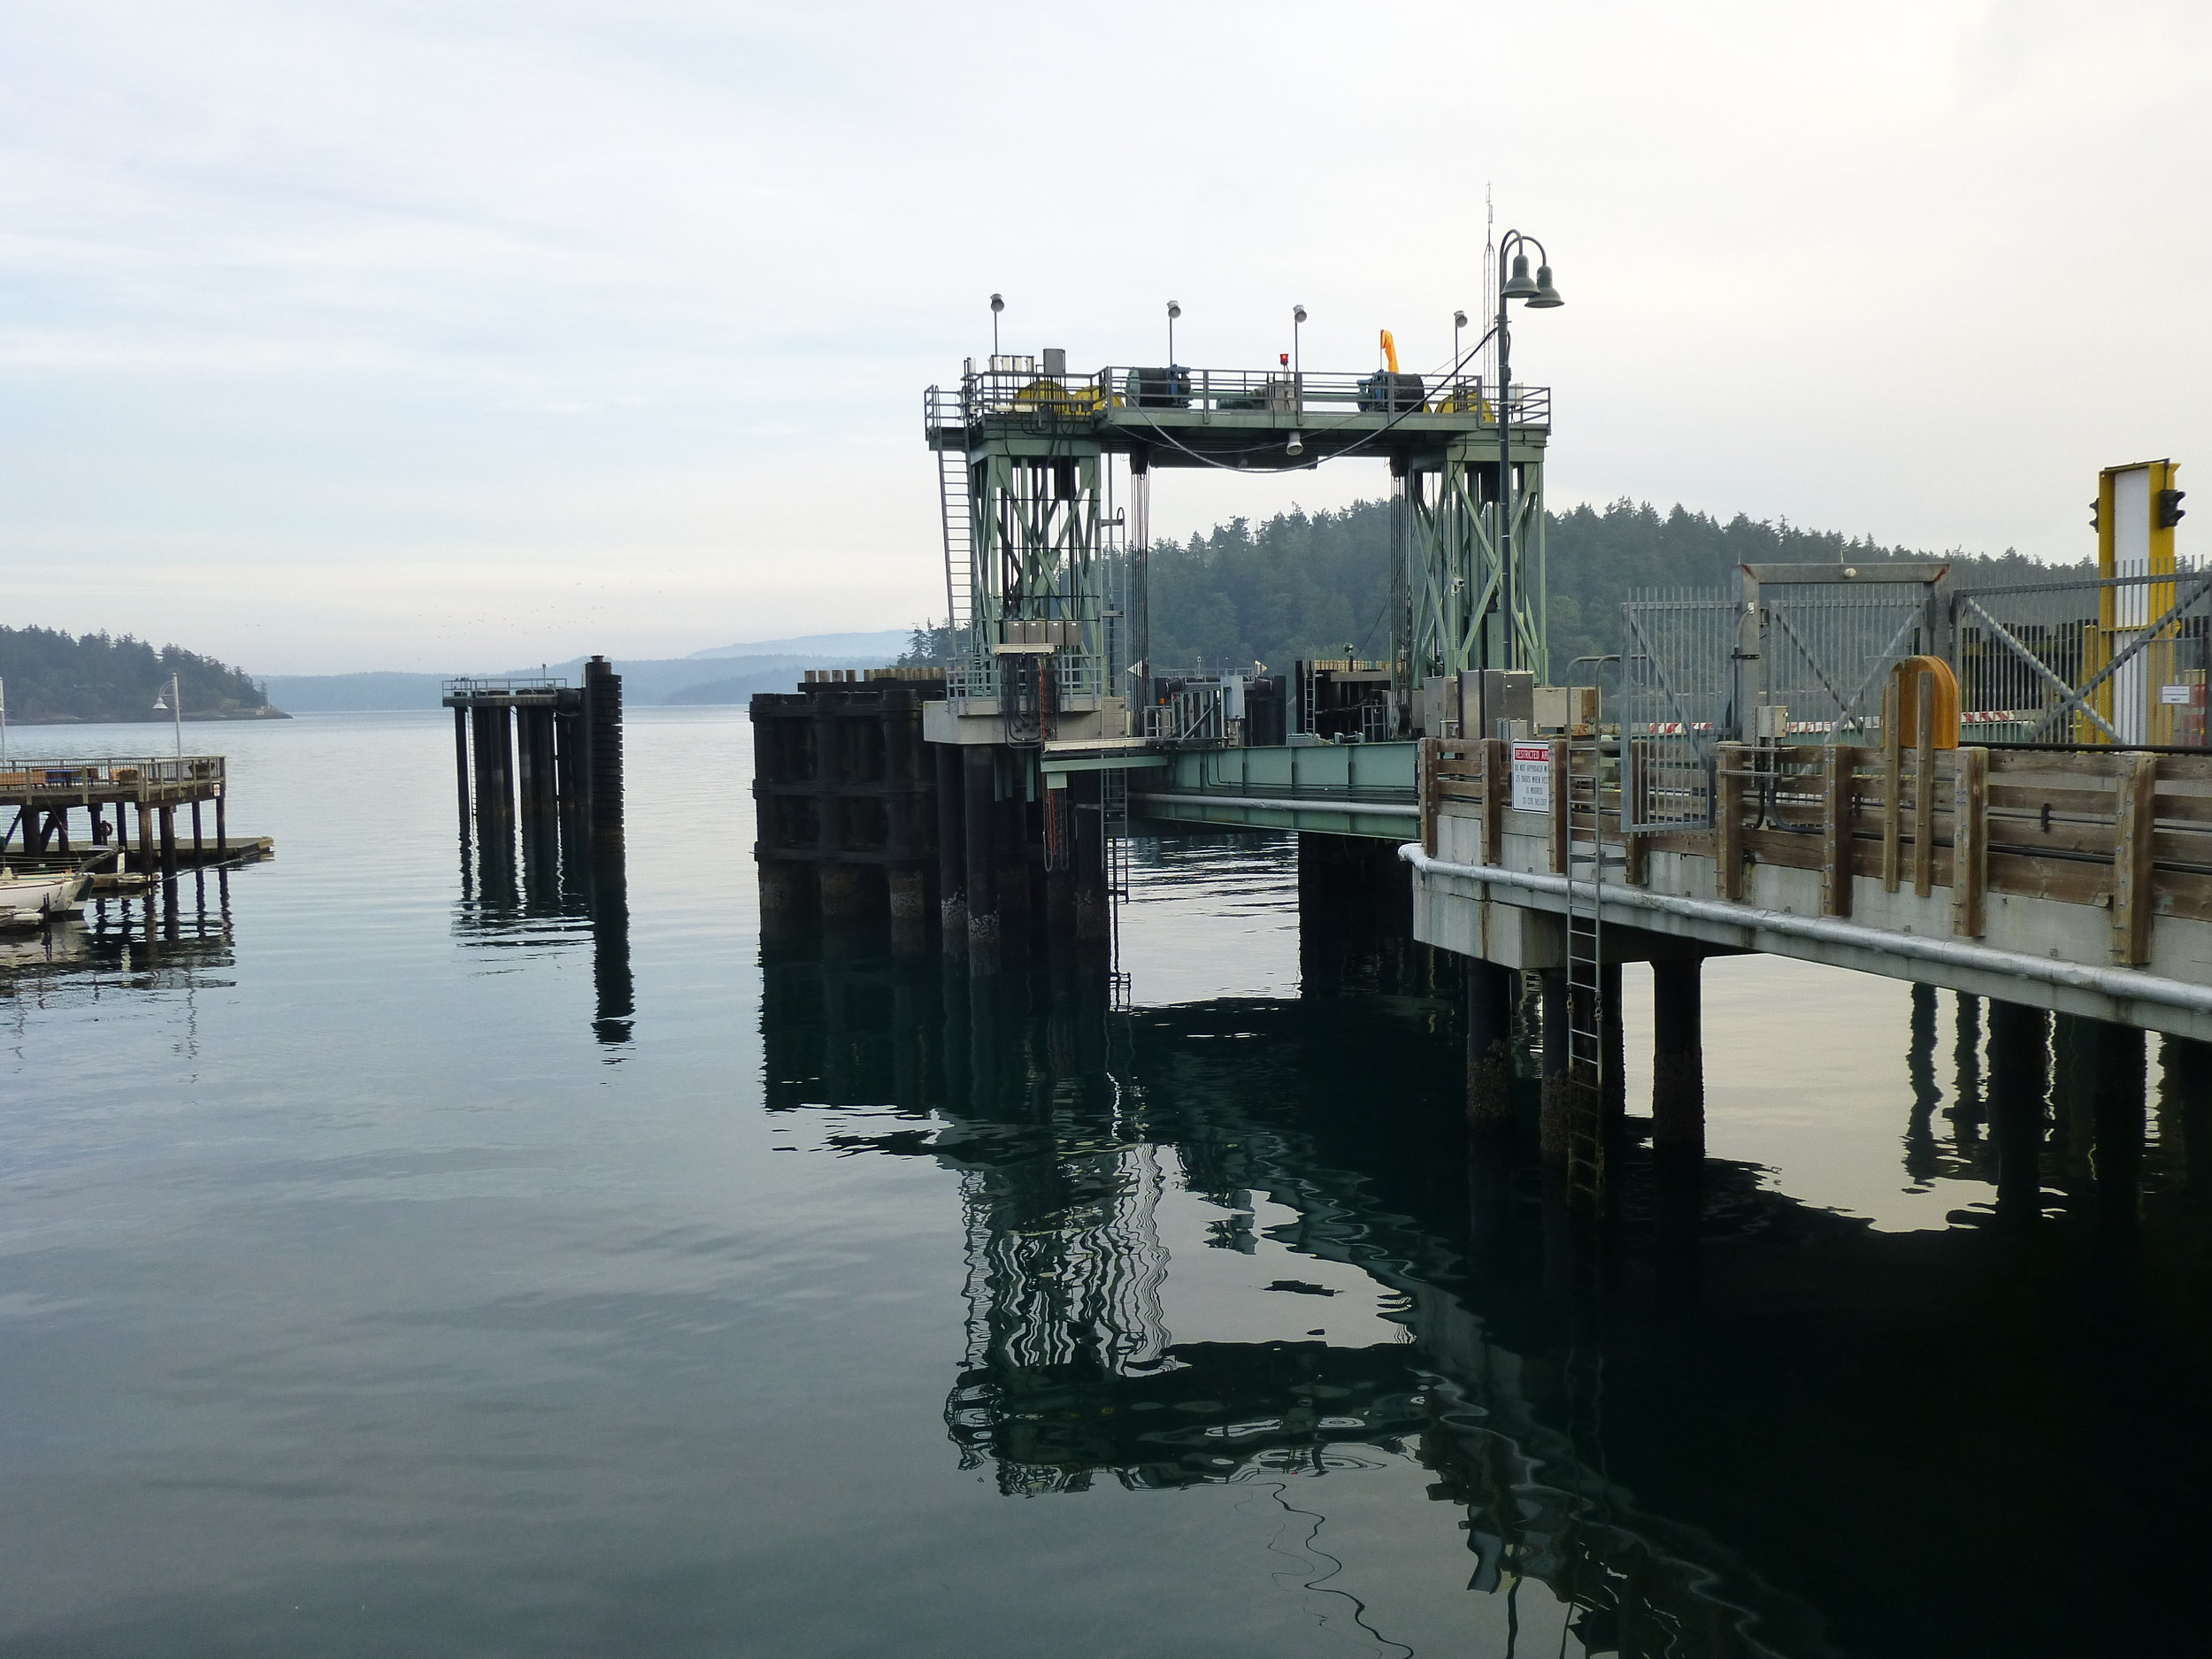 ahem... not our ferry landing!